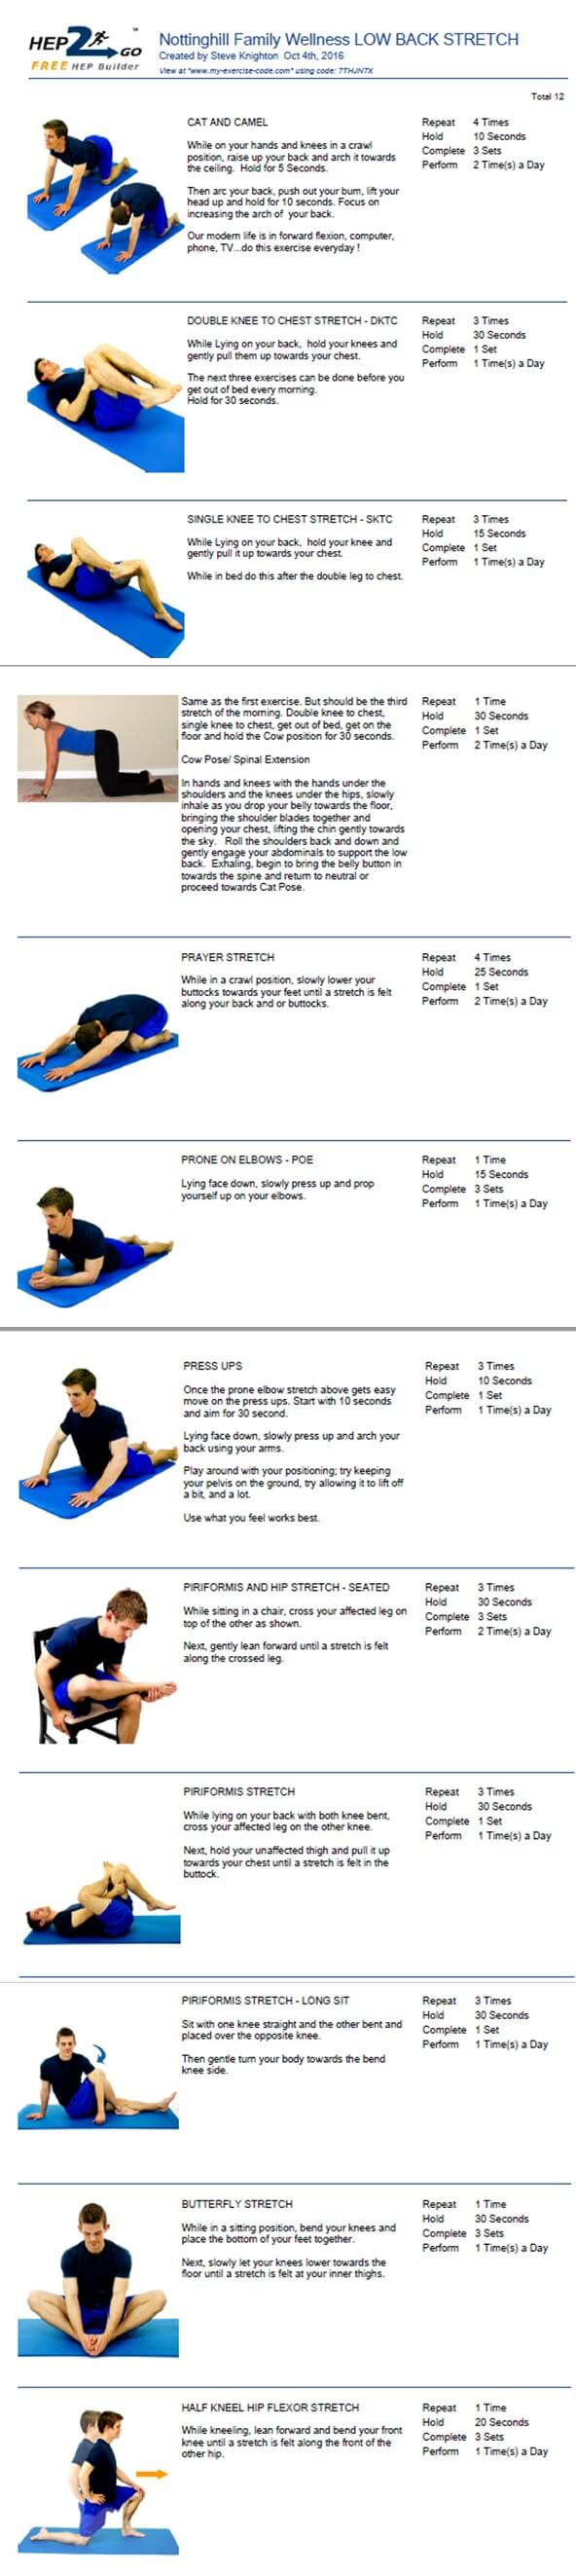 Low Back Stretches oakville chiropractor clinic